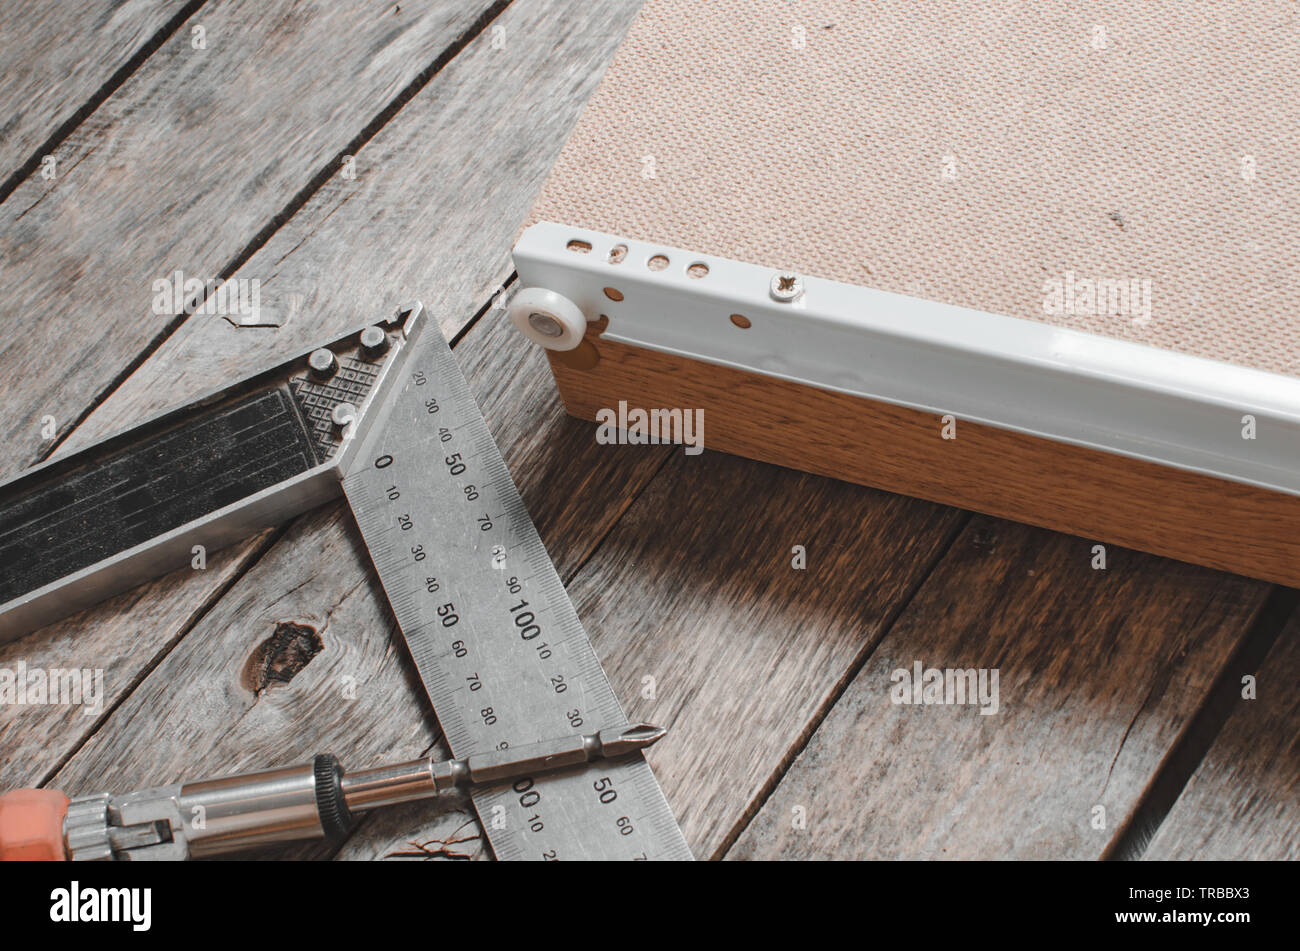 Screwdriver metal measuring corner and assembled furniture box with screwed guides. - Stock Image